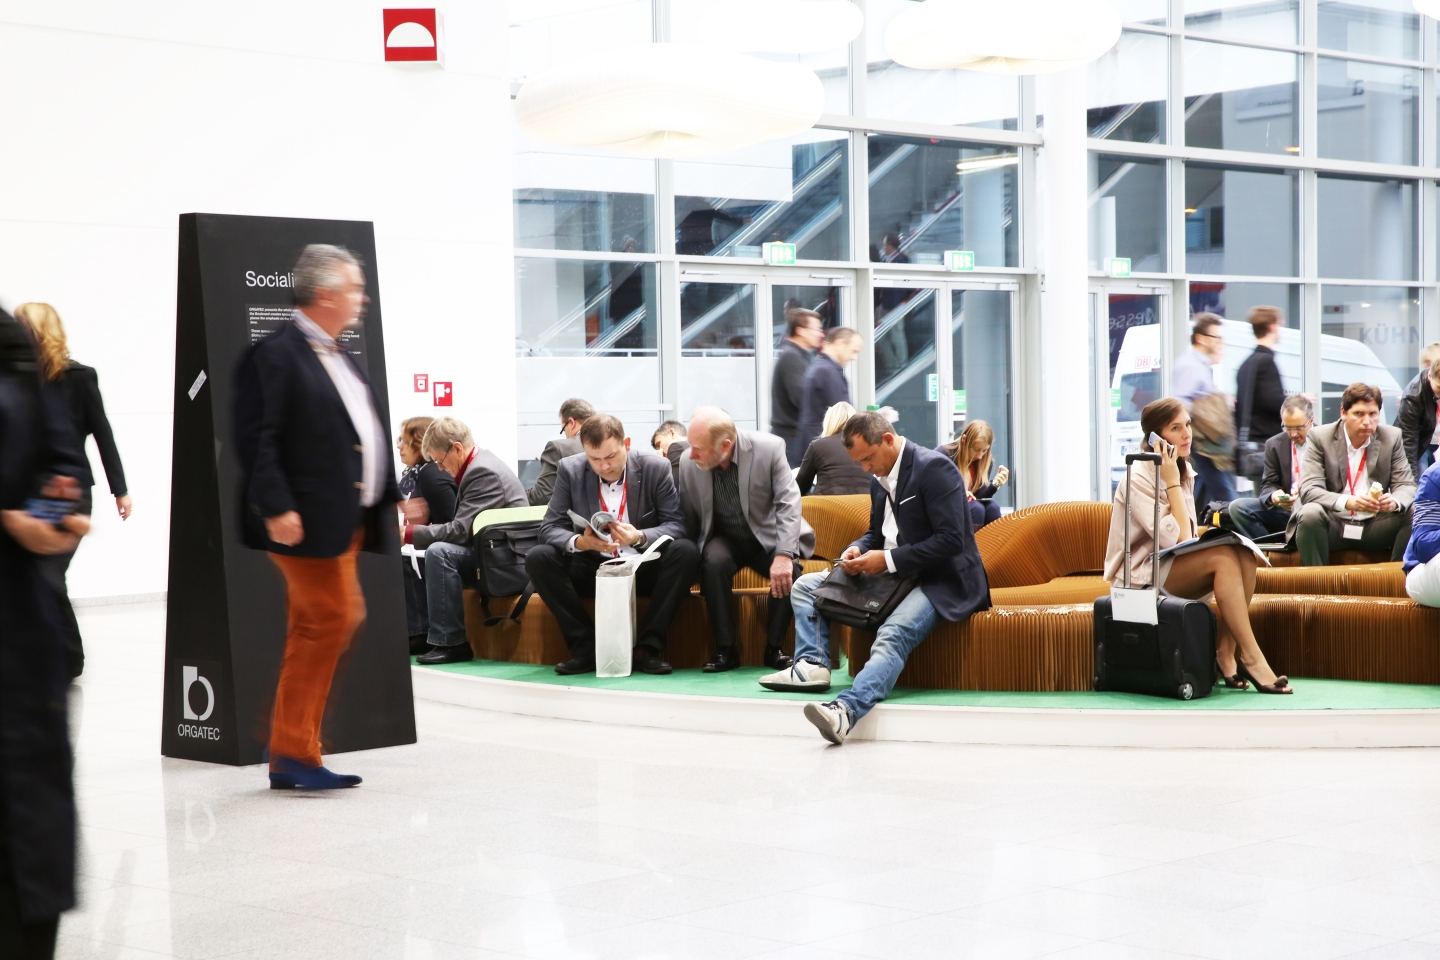 paper bench / furniture by molo - a serpentine bench made from softseating set up in the central foyer of Orgatec